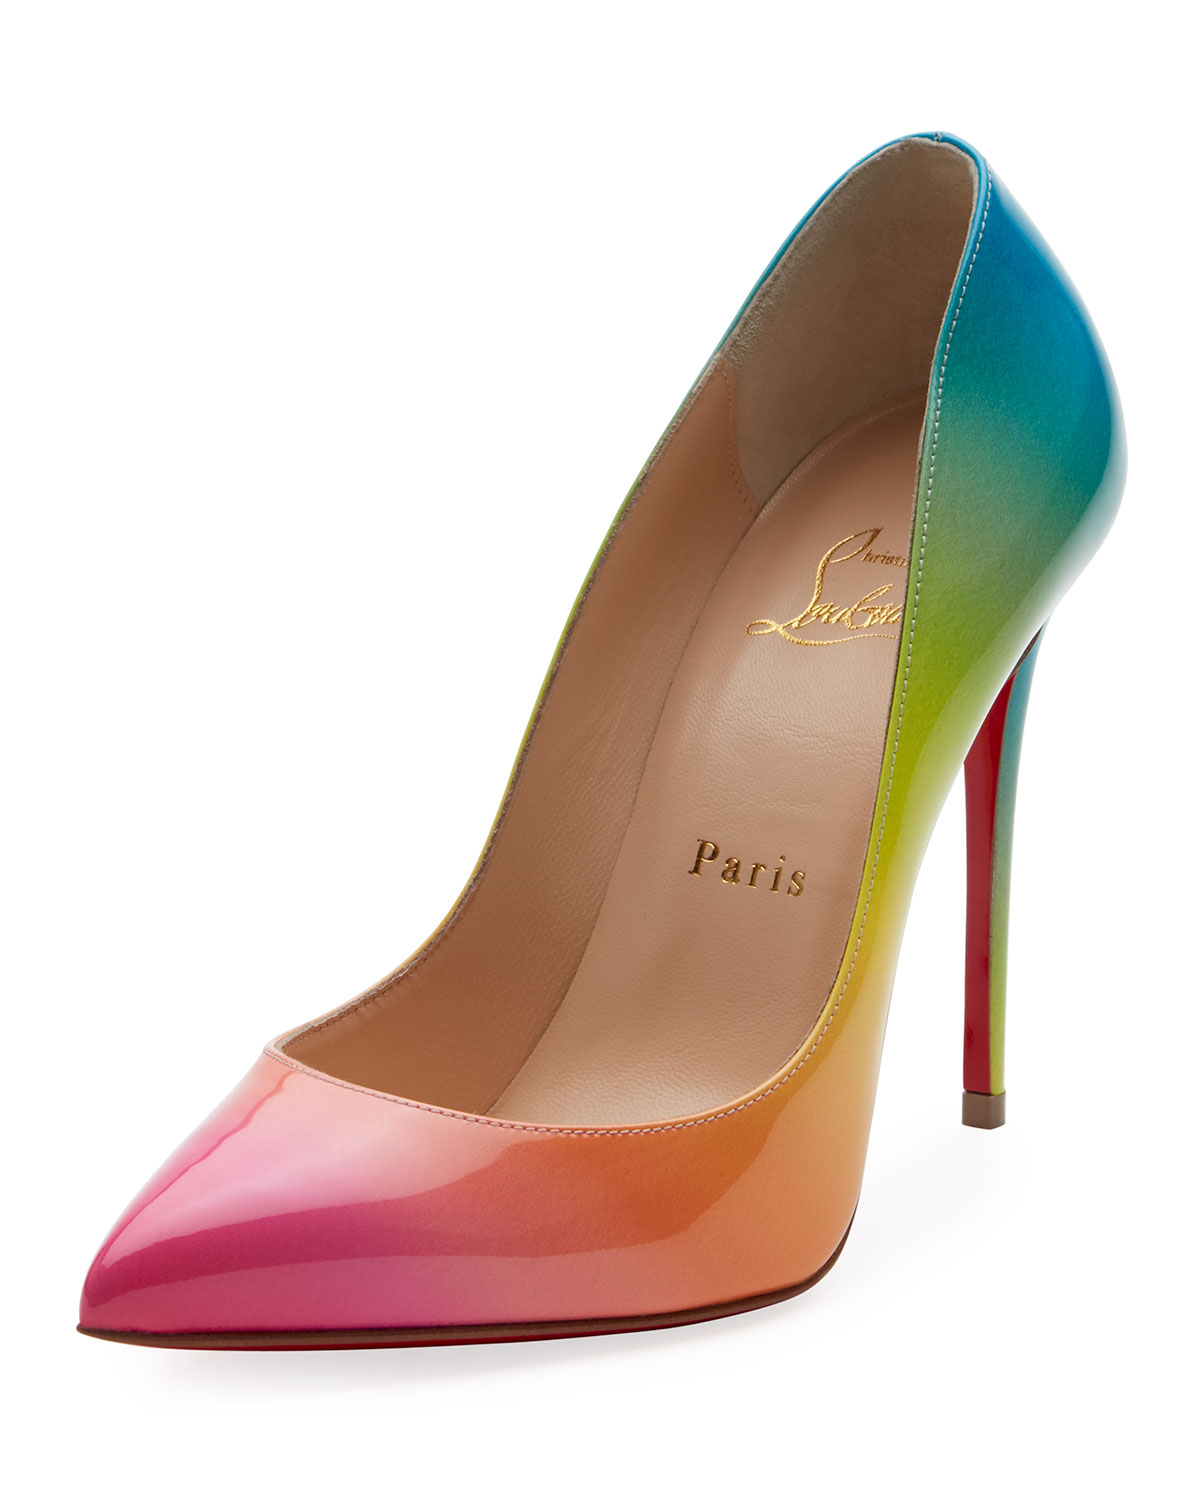 265fe753b30c Christian LouboutinPigalle Follies 100mm Ombre Patent Red Sole Pumps